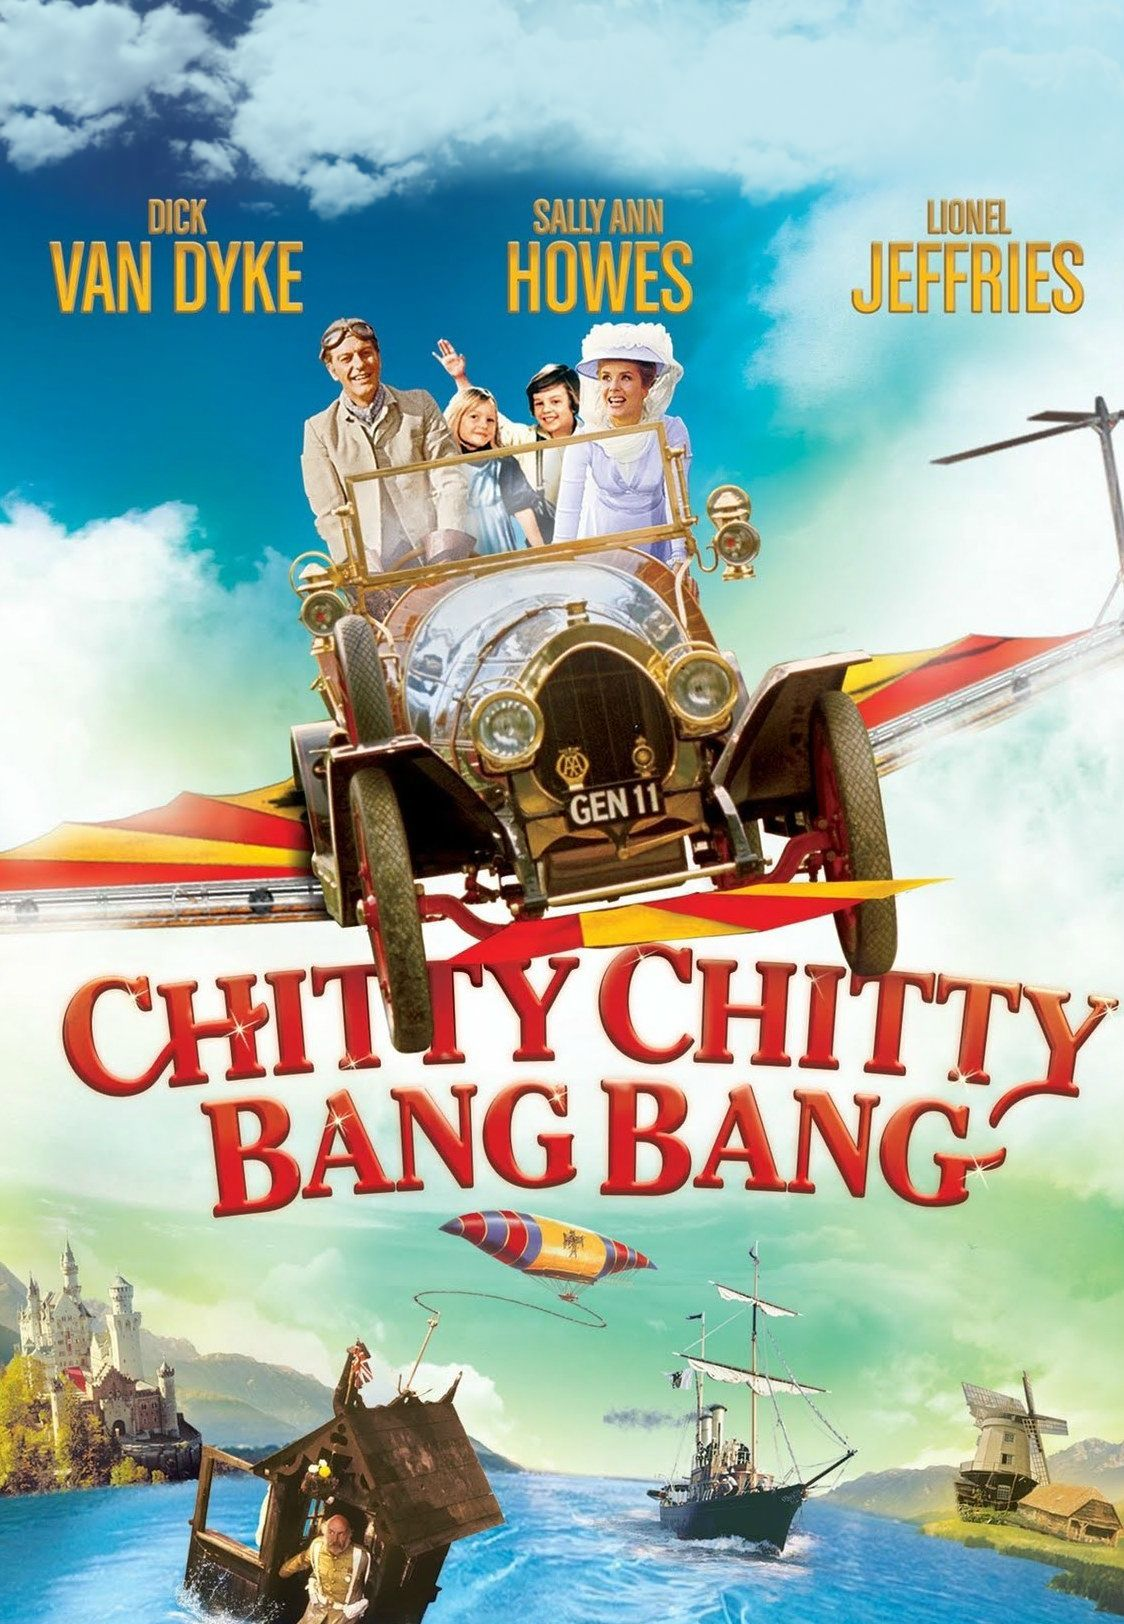 Chitty Chitty Bang Bang (film, 1968)